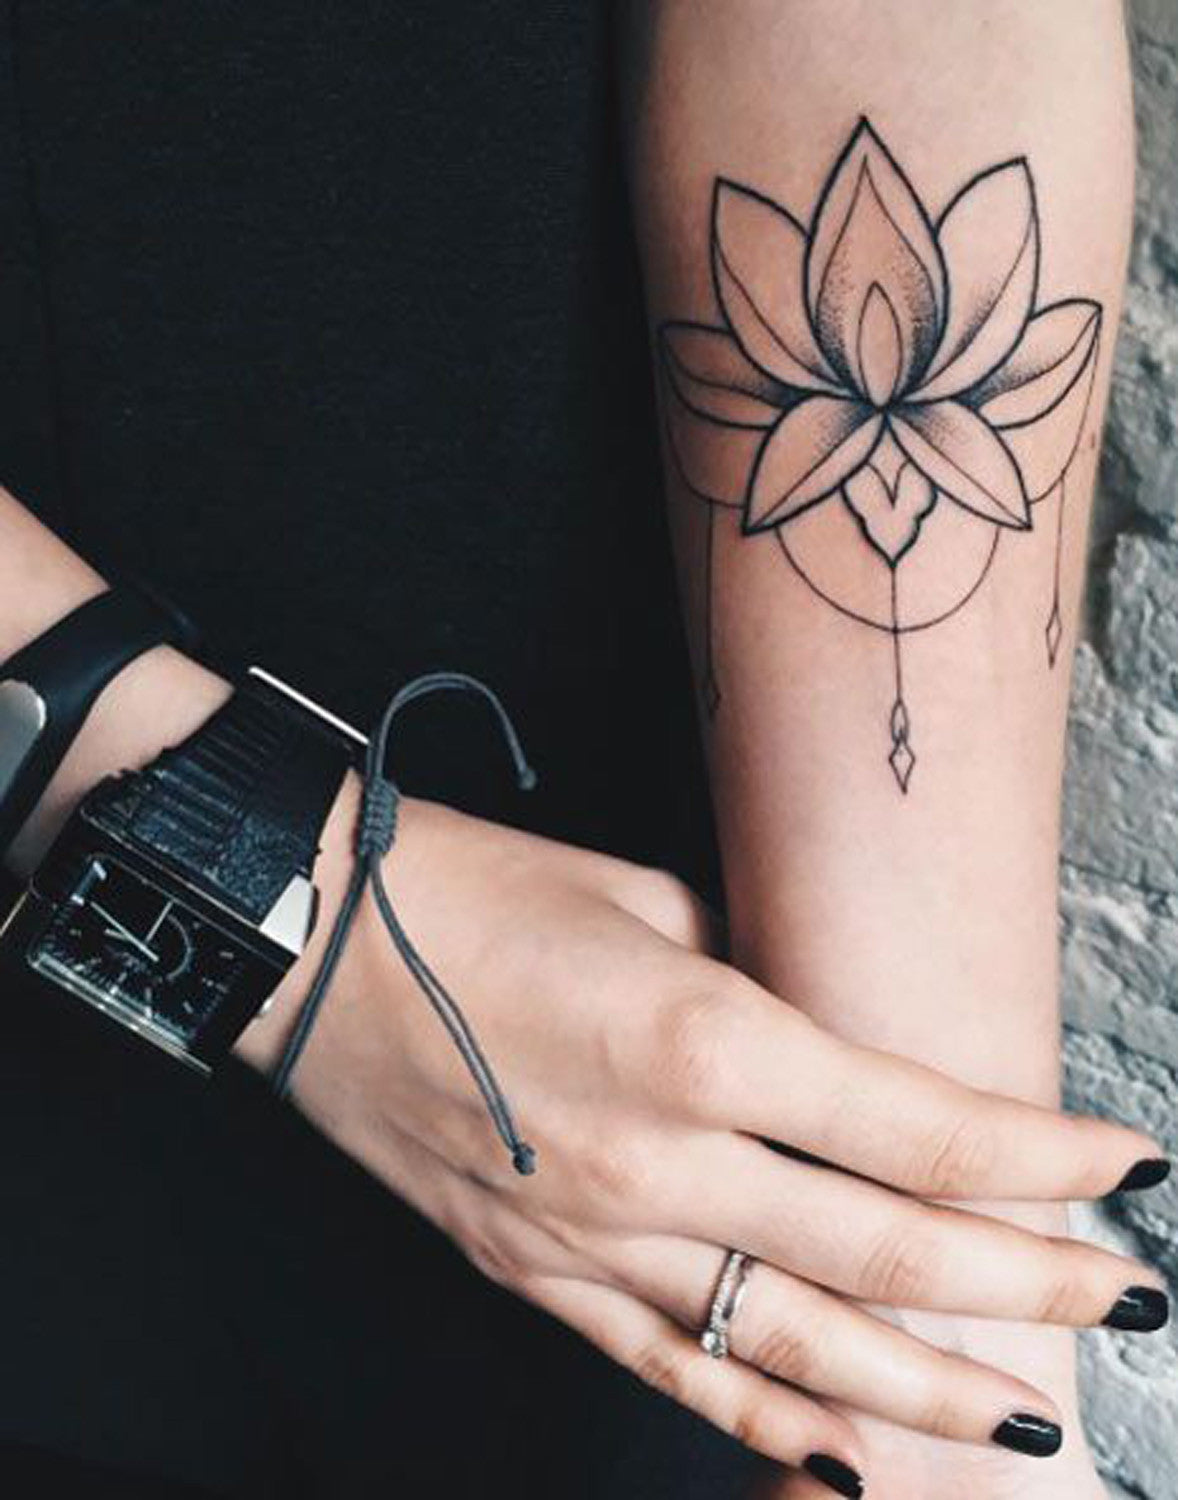 Lotus Flower Wrist Tattoo Ideas for Women - Black Chandelier Lace Arm Tat MyBodiArt.com